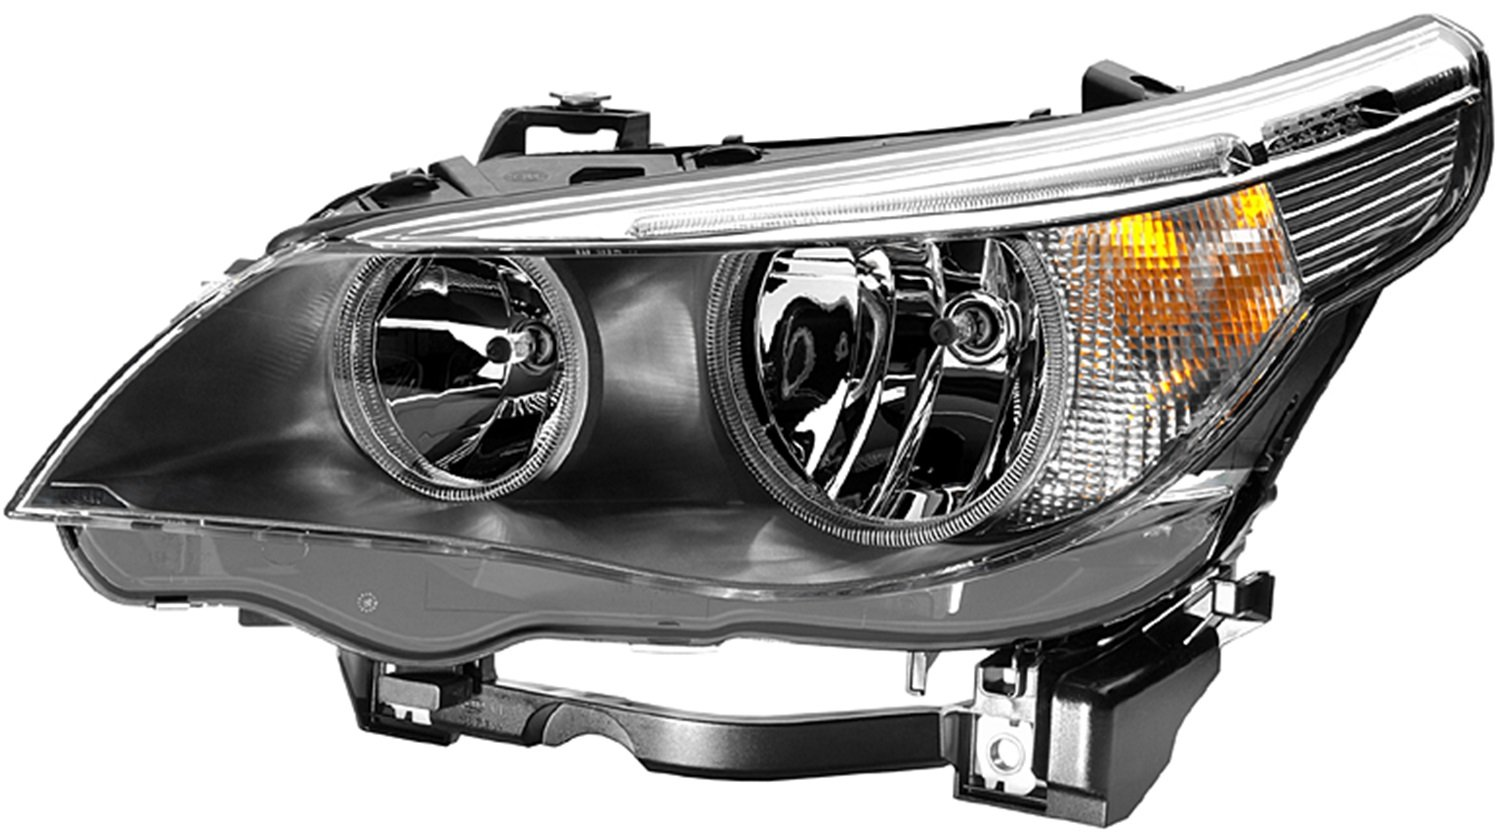 Hella 008673111 Bmw 5 Series E60 E61 Driver Side Headlight Assembly Lamp Wiring Harness Auxiliary Lights Automotive